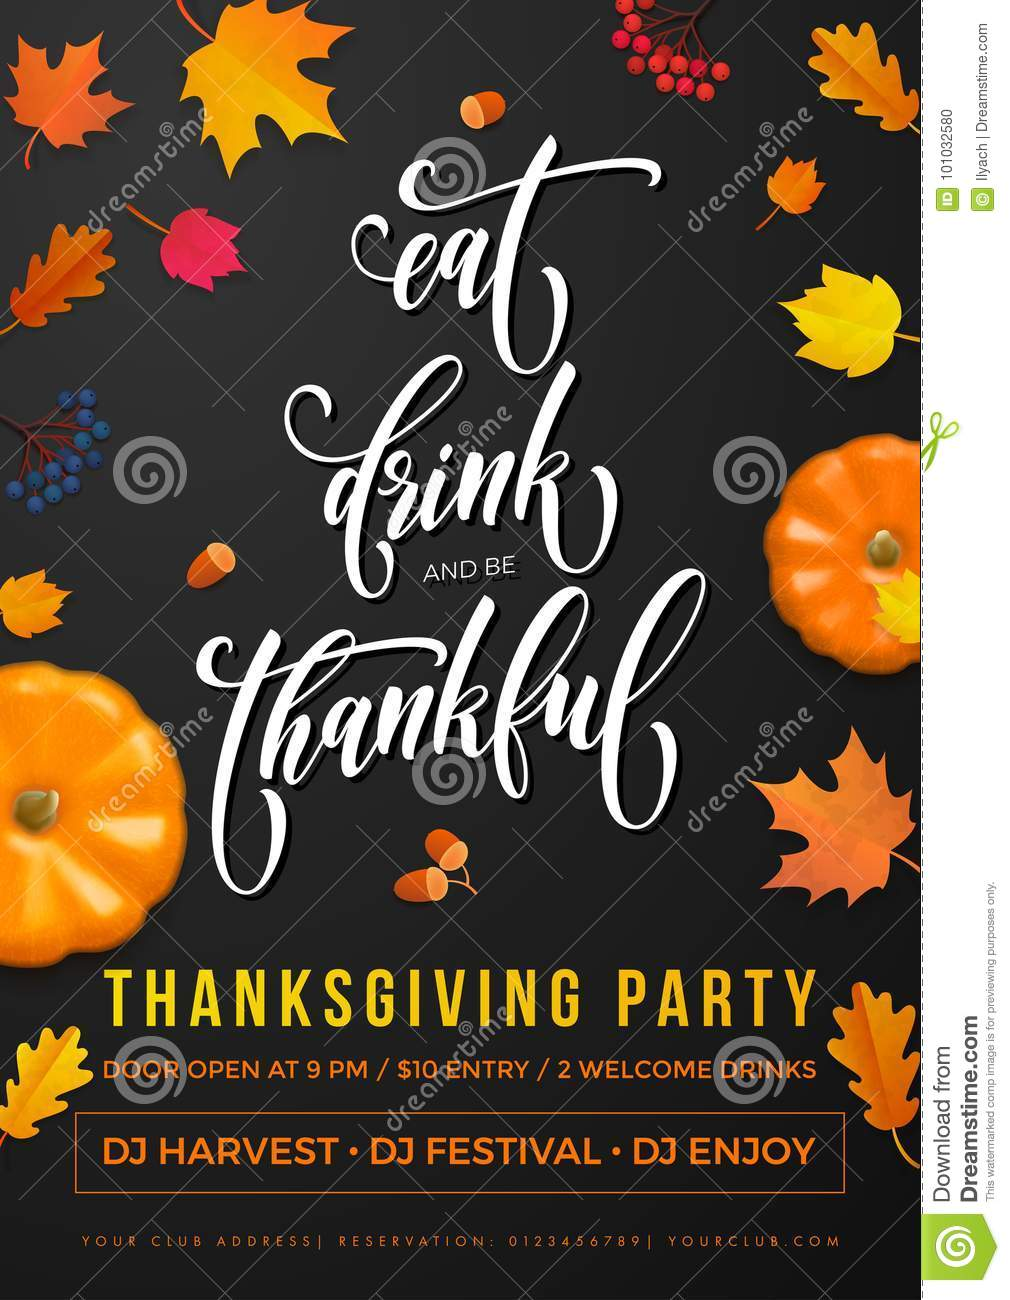 Happy thanksgiving holiday party autumn fall vector pumpkin leaf download happy thanksgiving holiday party autumn fall vector pumpkin leaf greeting card stock vector illustration m4hsunfo